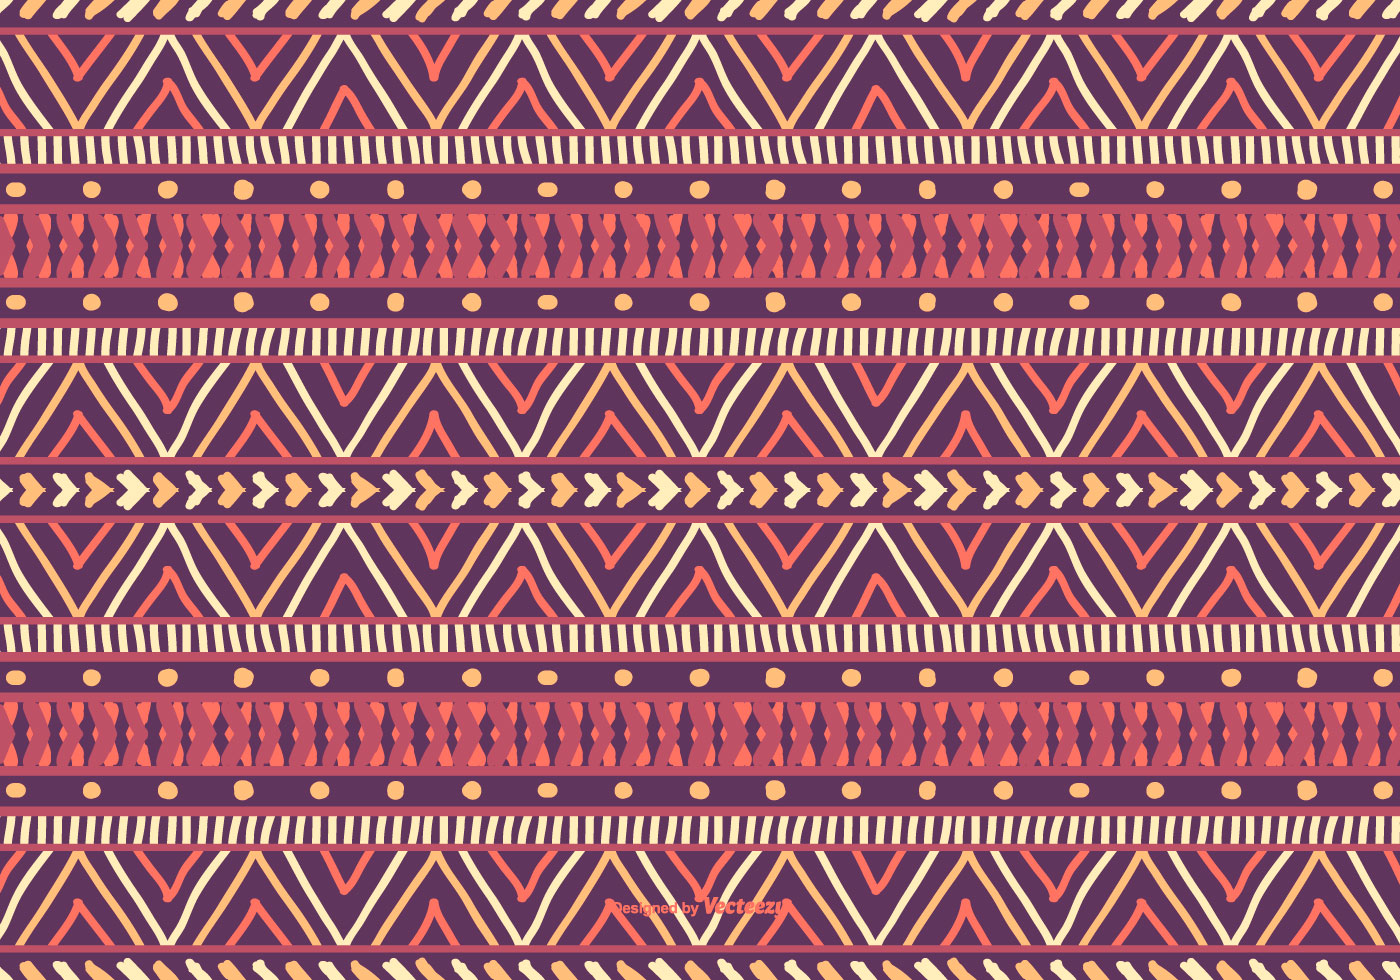 Tribal Cute Wallpaper Colorful Boho Style Pattern Background Download Free